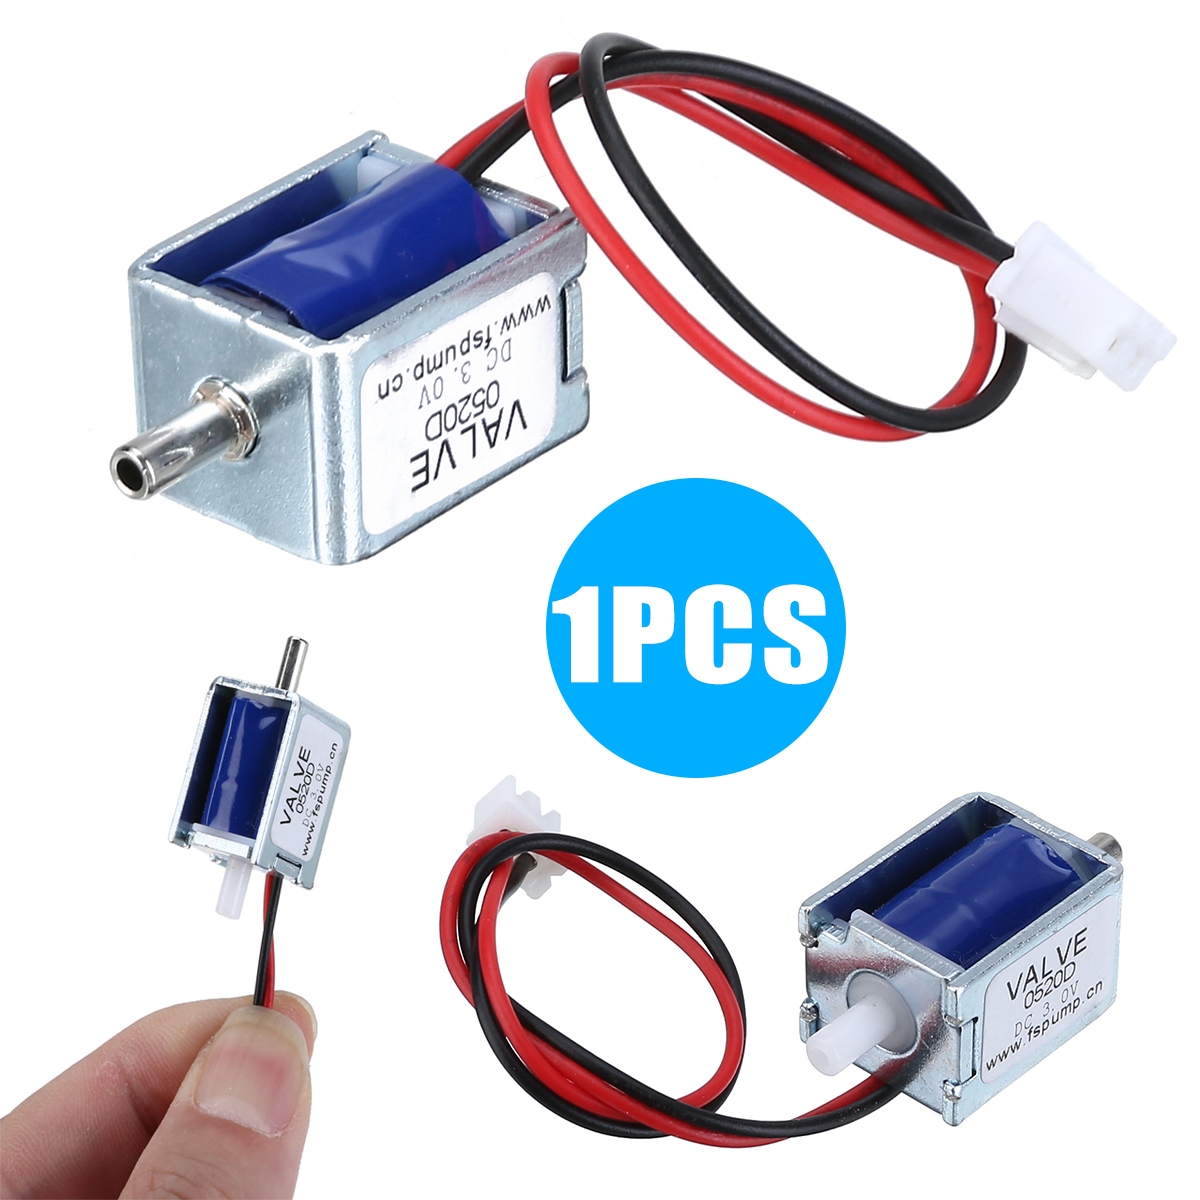 1Pcs DC 3V Mini Electric DC Solenoid Valve N/C Normally Closed For Gas Air Valve For Power Tool Accessories High Quality